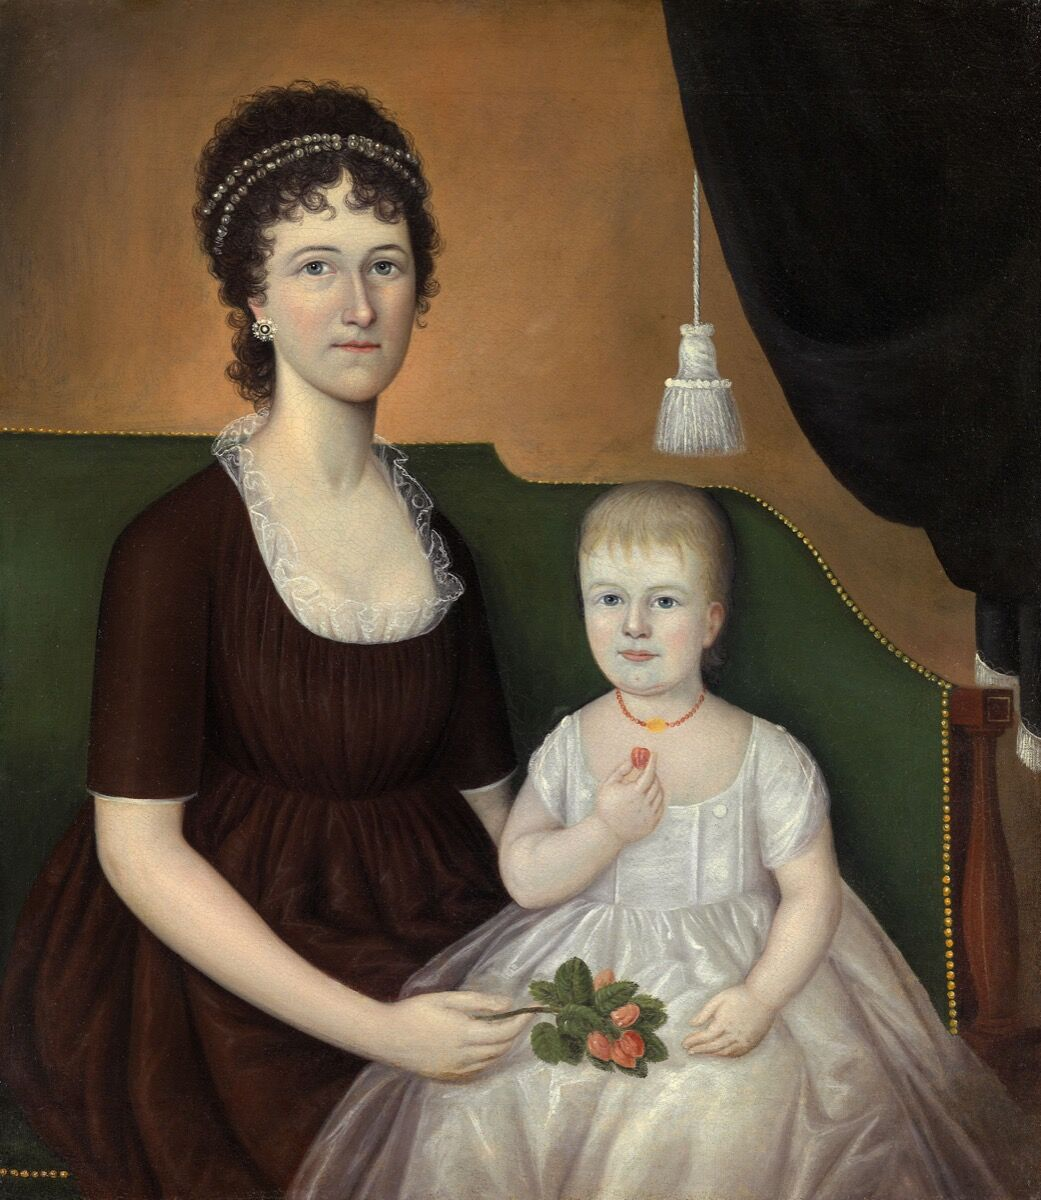 Joshua Johnson, Elizabeth Grant Bankson Beatty (Mrs. James Beatty) and Her Daughter Susan, c. 1805. Courtesy of Art Institute of Chicago.